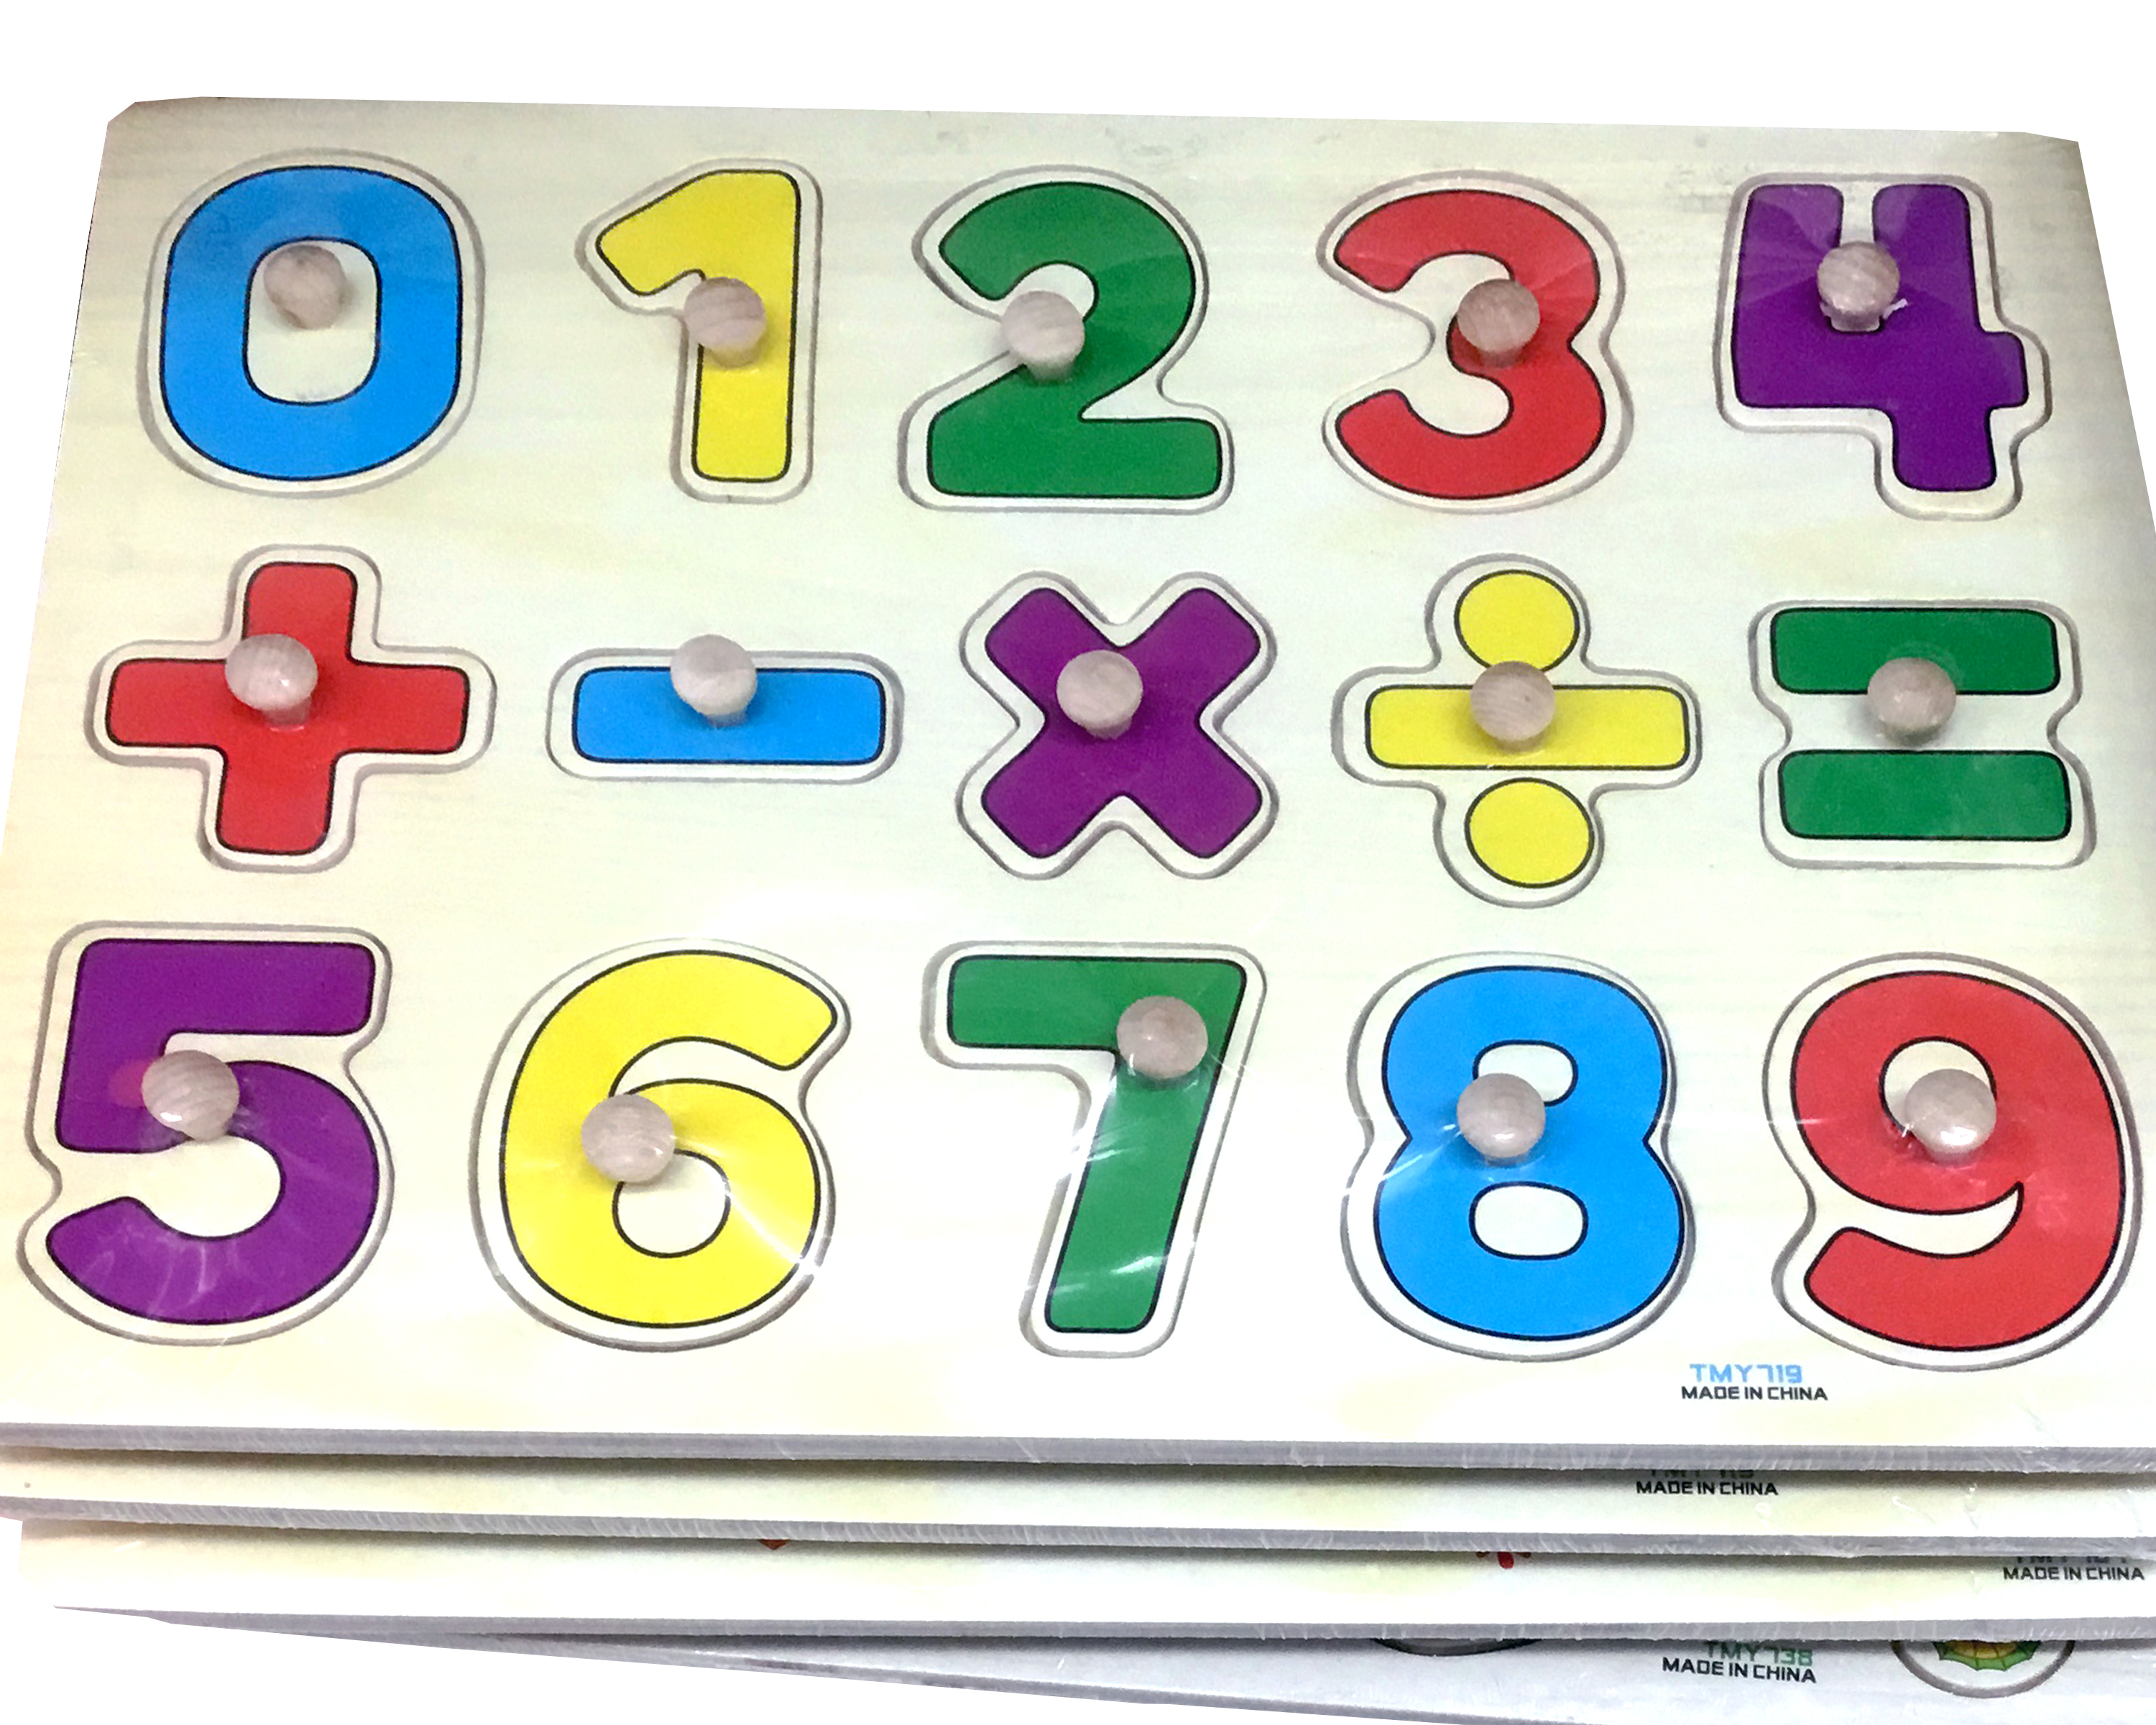 A wooden puzzle with numbers from 0 to 9 in different colours